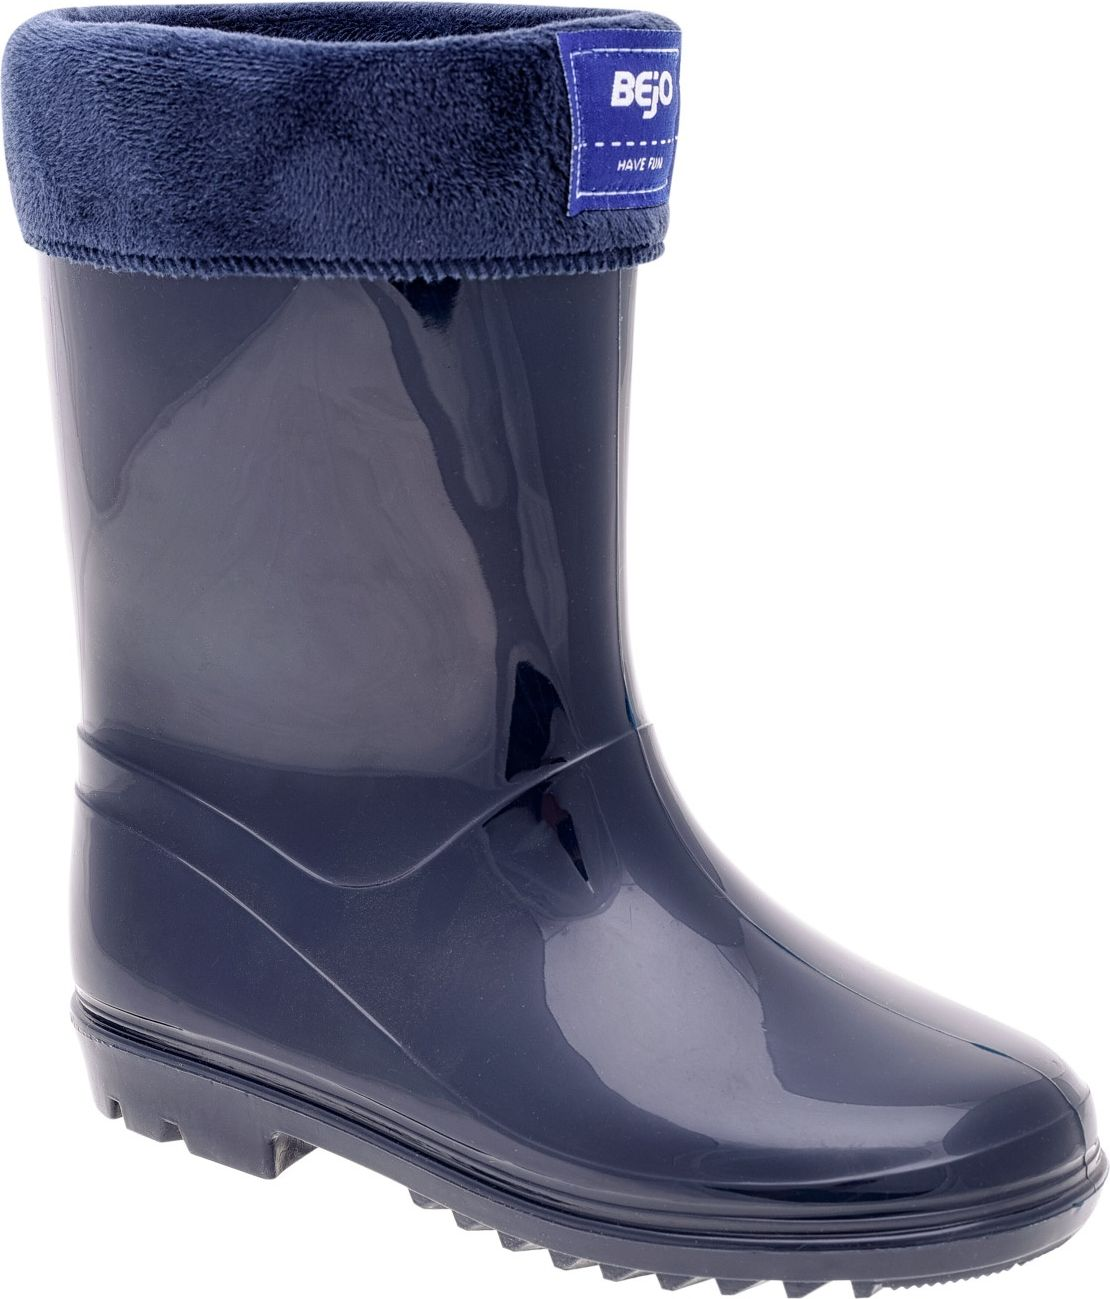 BEJO Kalosze dzieciece Warm Wellies JR Medieval Blue r. 33 5902786087433